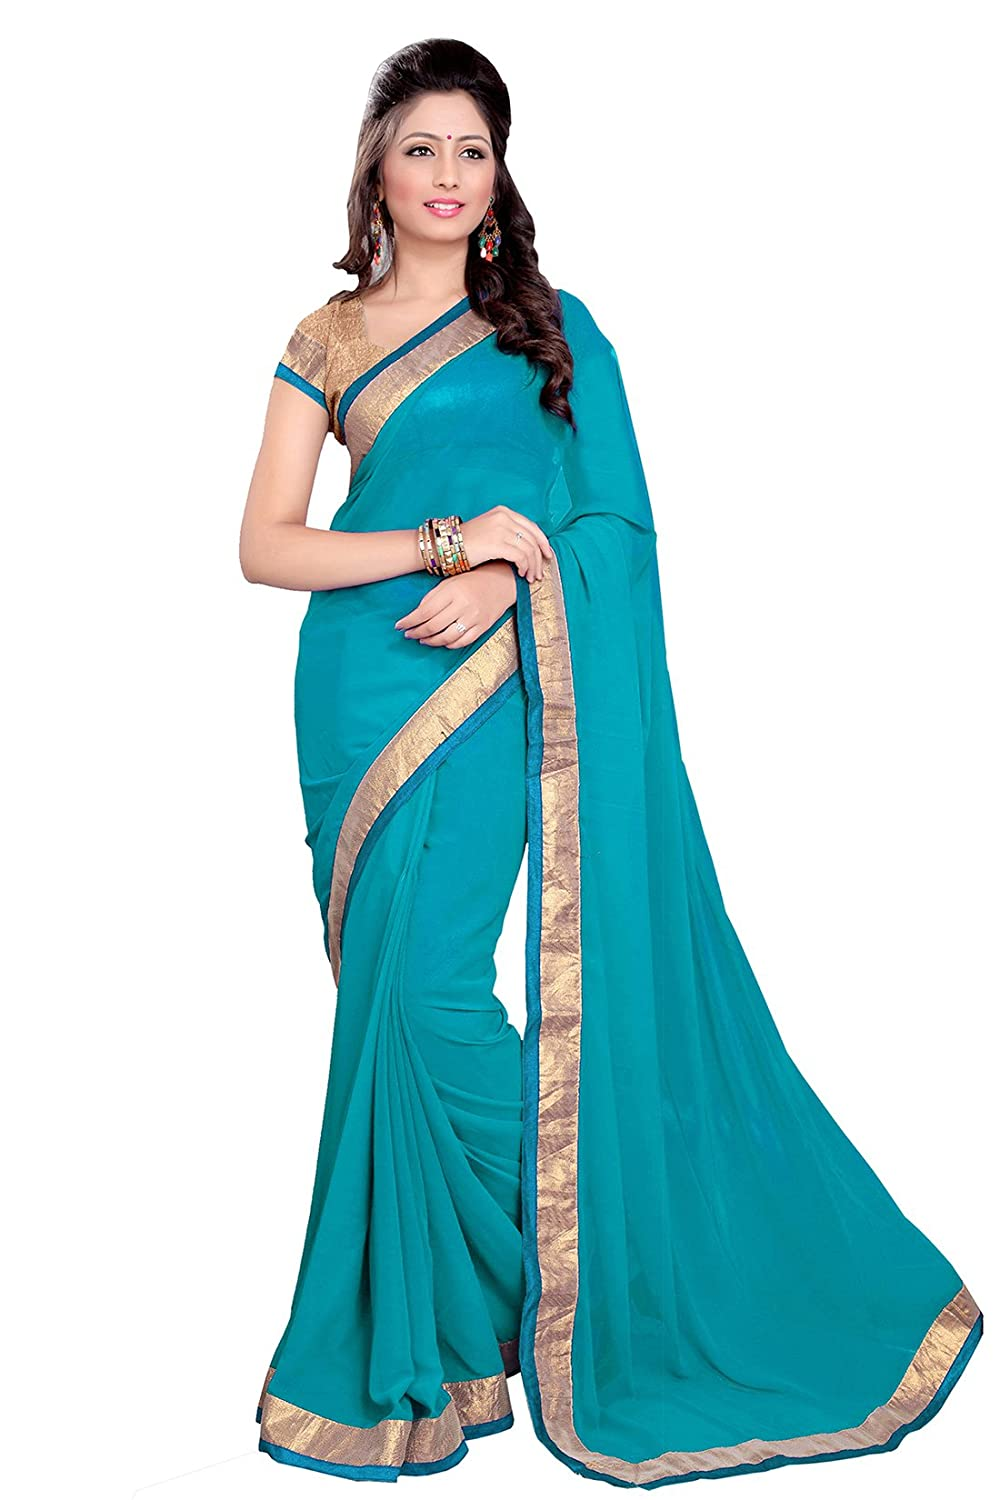 SOURBH Georgette Saree (171_Turquoise)